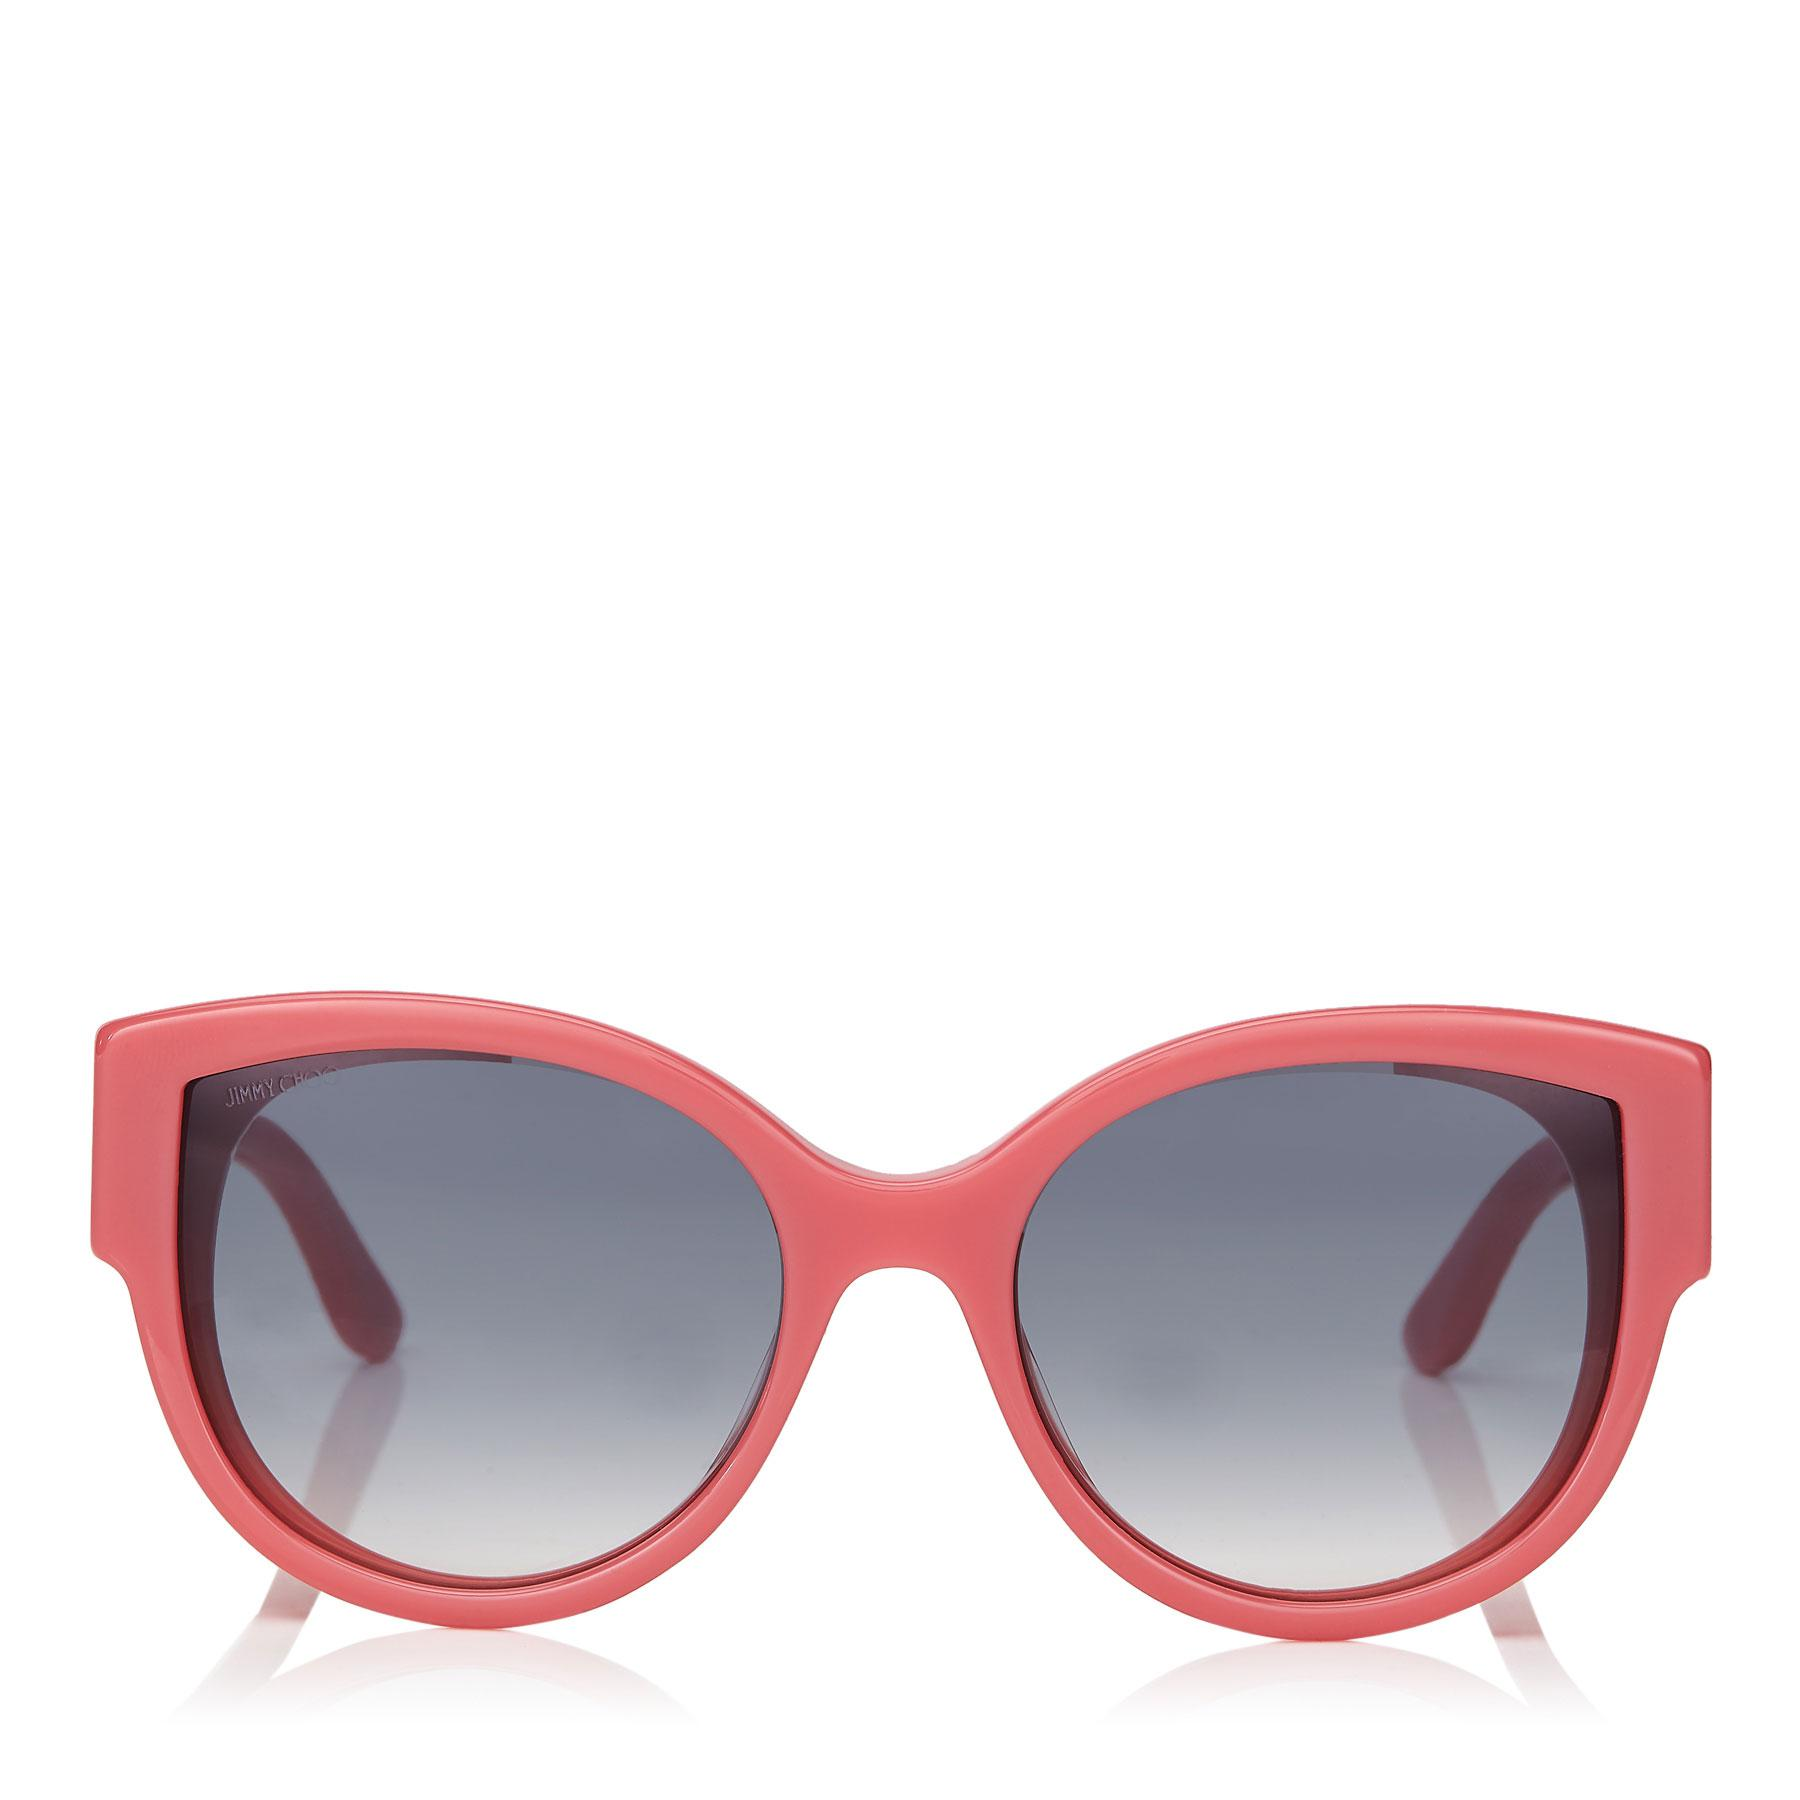 4628e2d78c Jimmy Choo. Women s Pollie Pink Cat-eye Sunglasses With Star Detailing